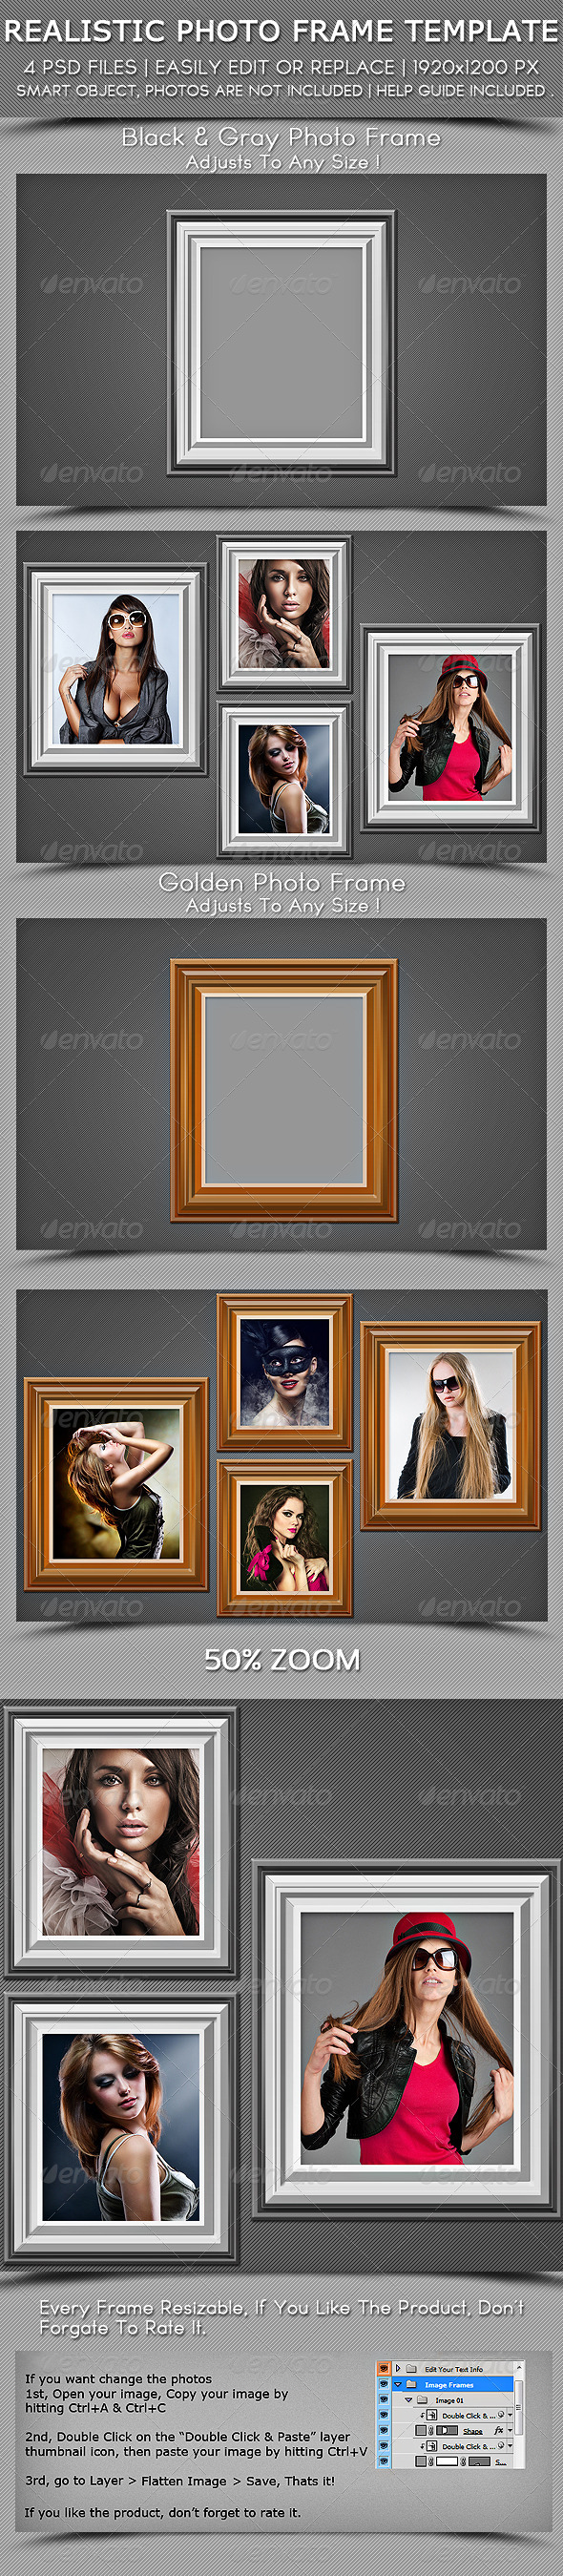 Realestic Photo Fram Template - Photo Templates Graphics